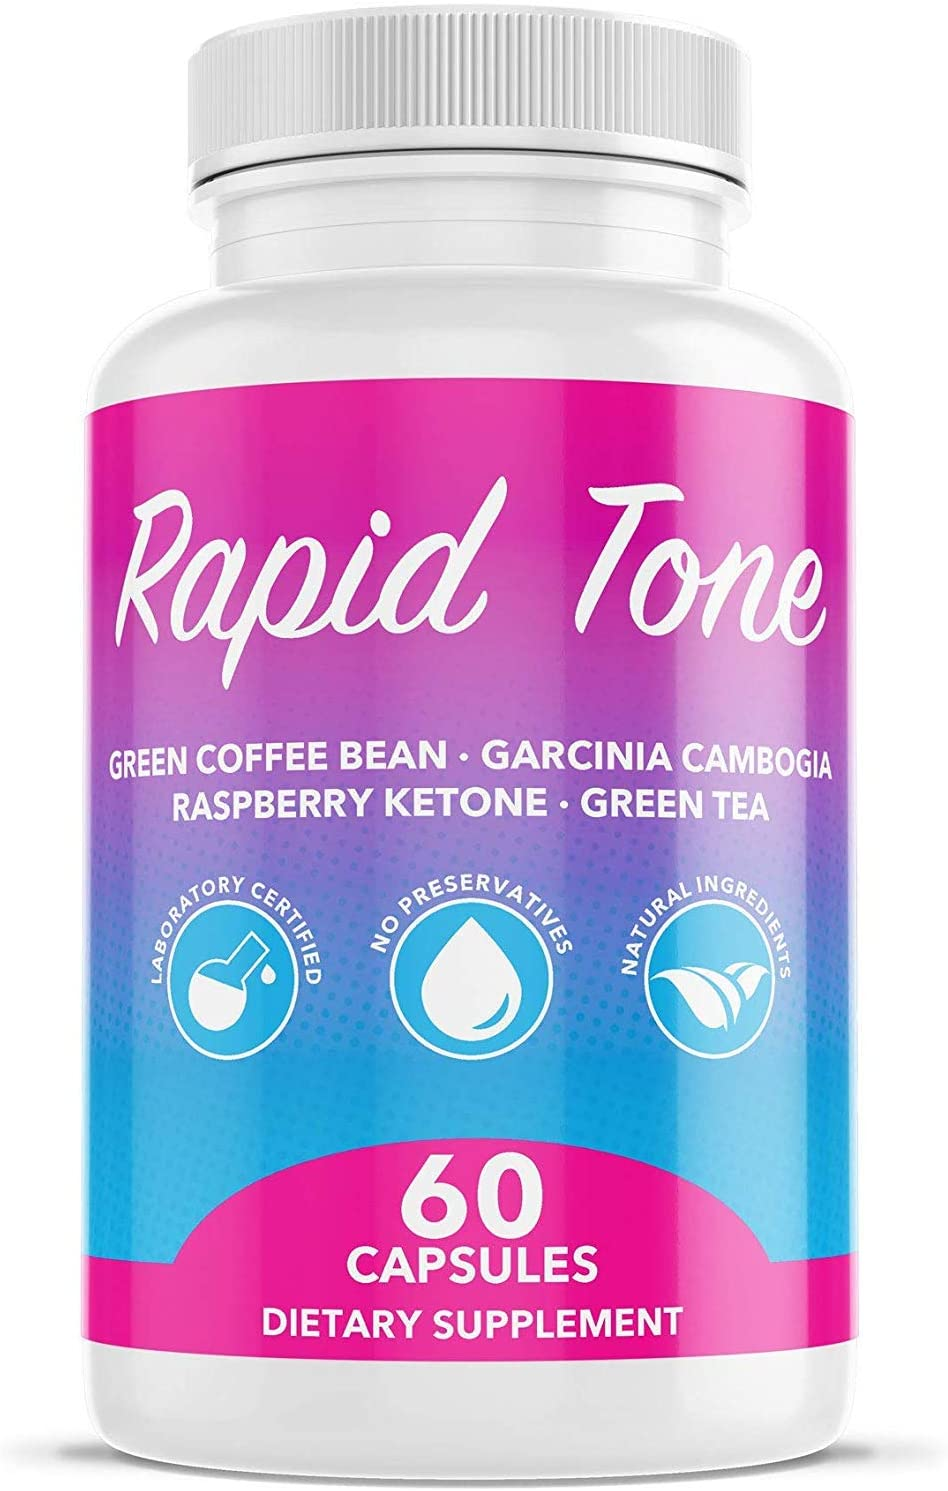 Rapid Tone Review 2020: Is It An Effective Fat Burner?